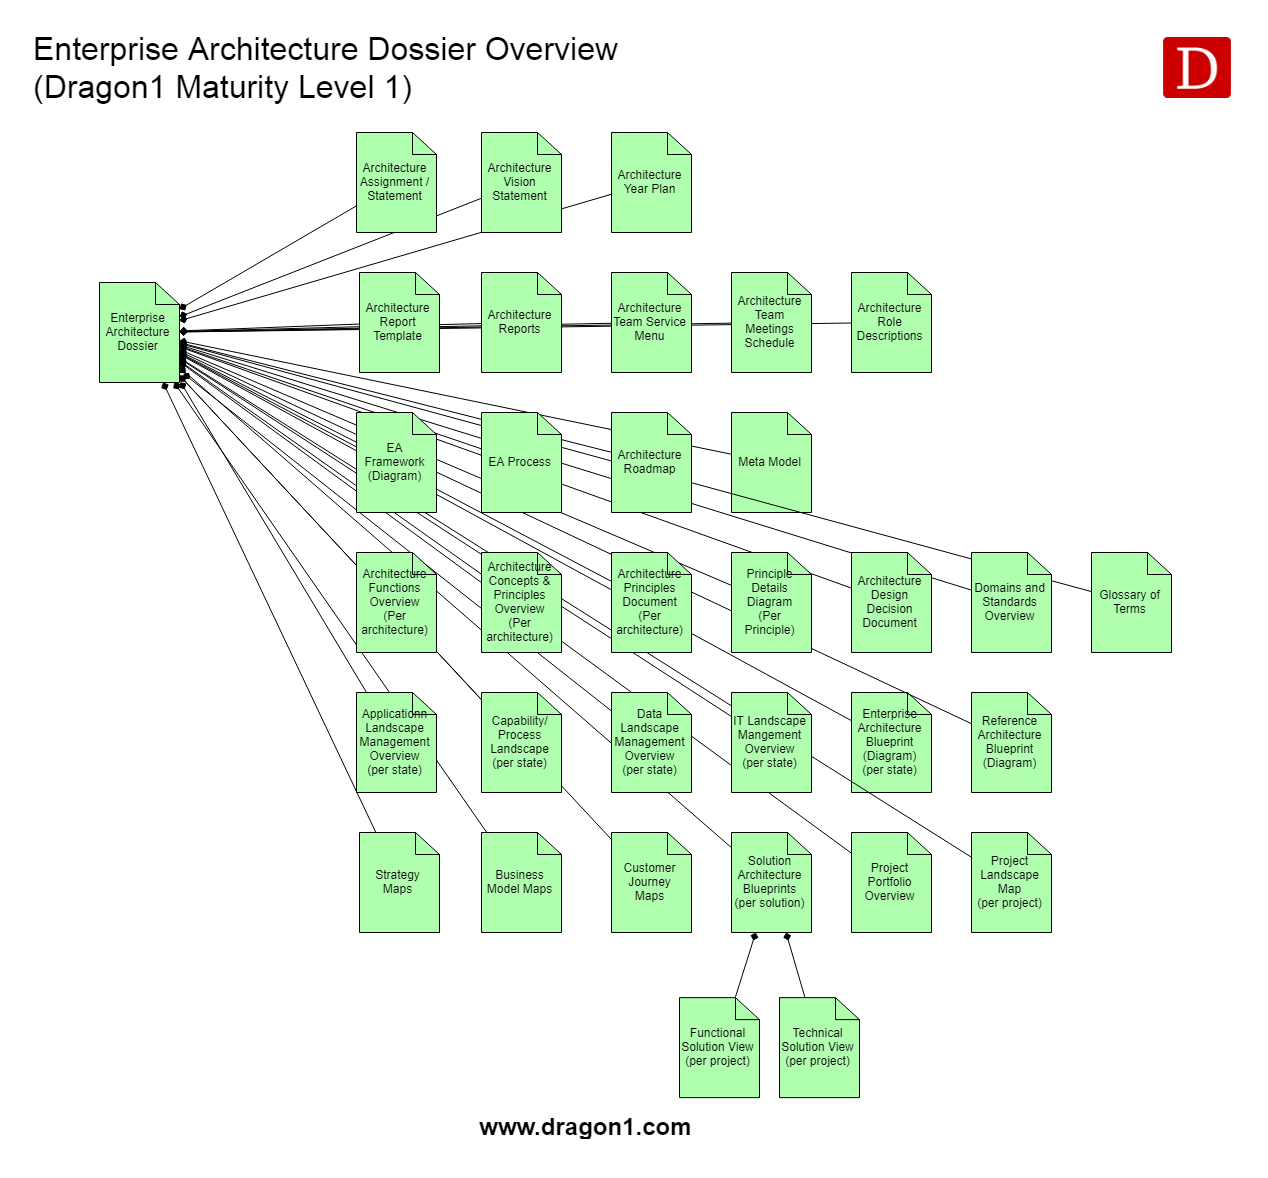 Enterprise Architecture Dossier Standard - Dragon1